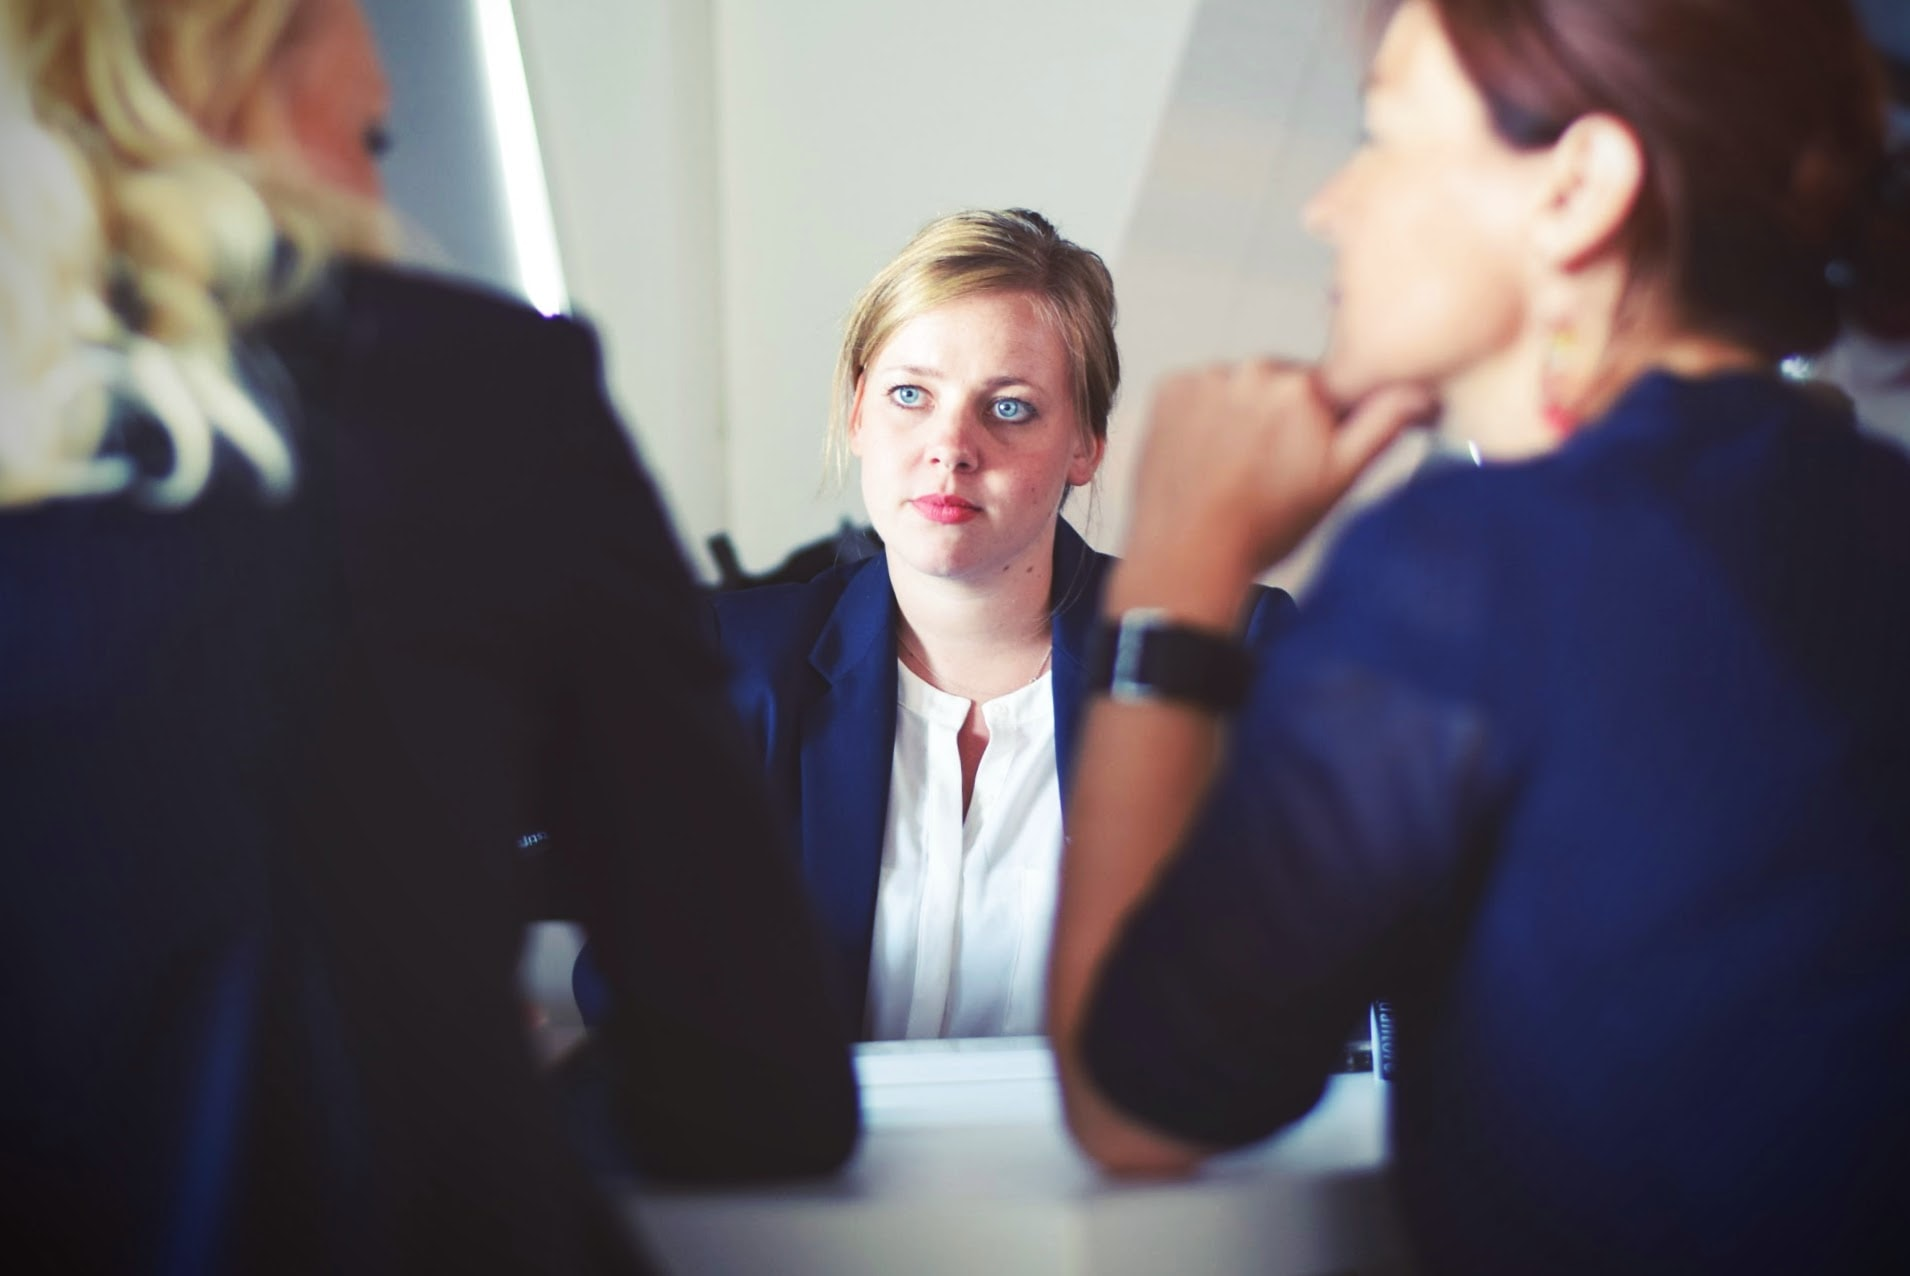 3 Mistakes Leaders Make When Trying To Support Their Employee's Mental Health